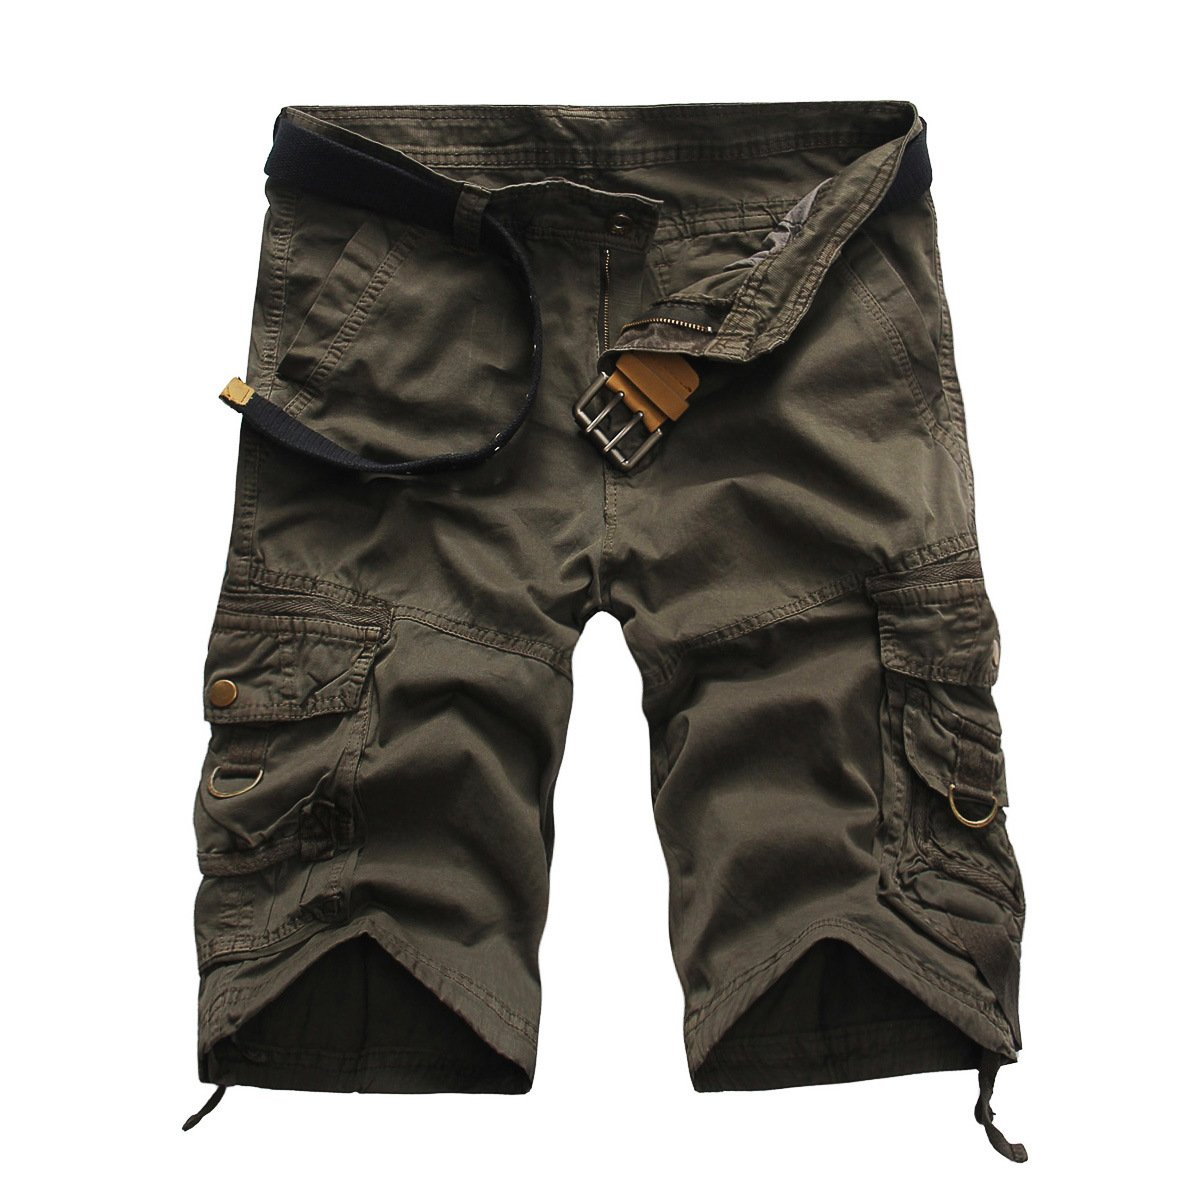 Men's Cargo Shorts Camouflage Multi Pockets Twill Fit Breathable Summer Loose Outdoor Shorts Grey-36